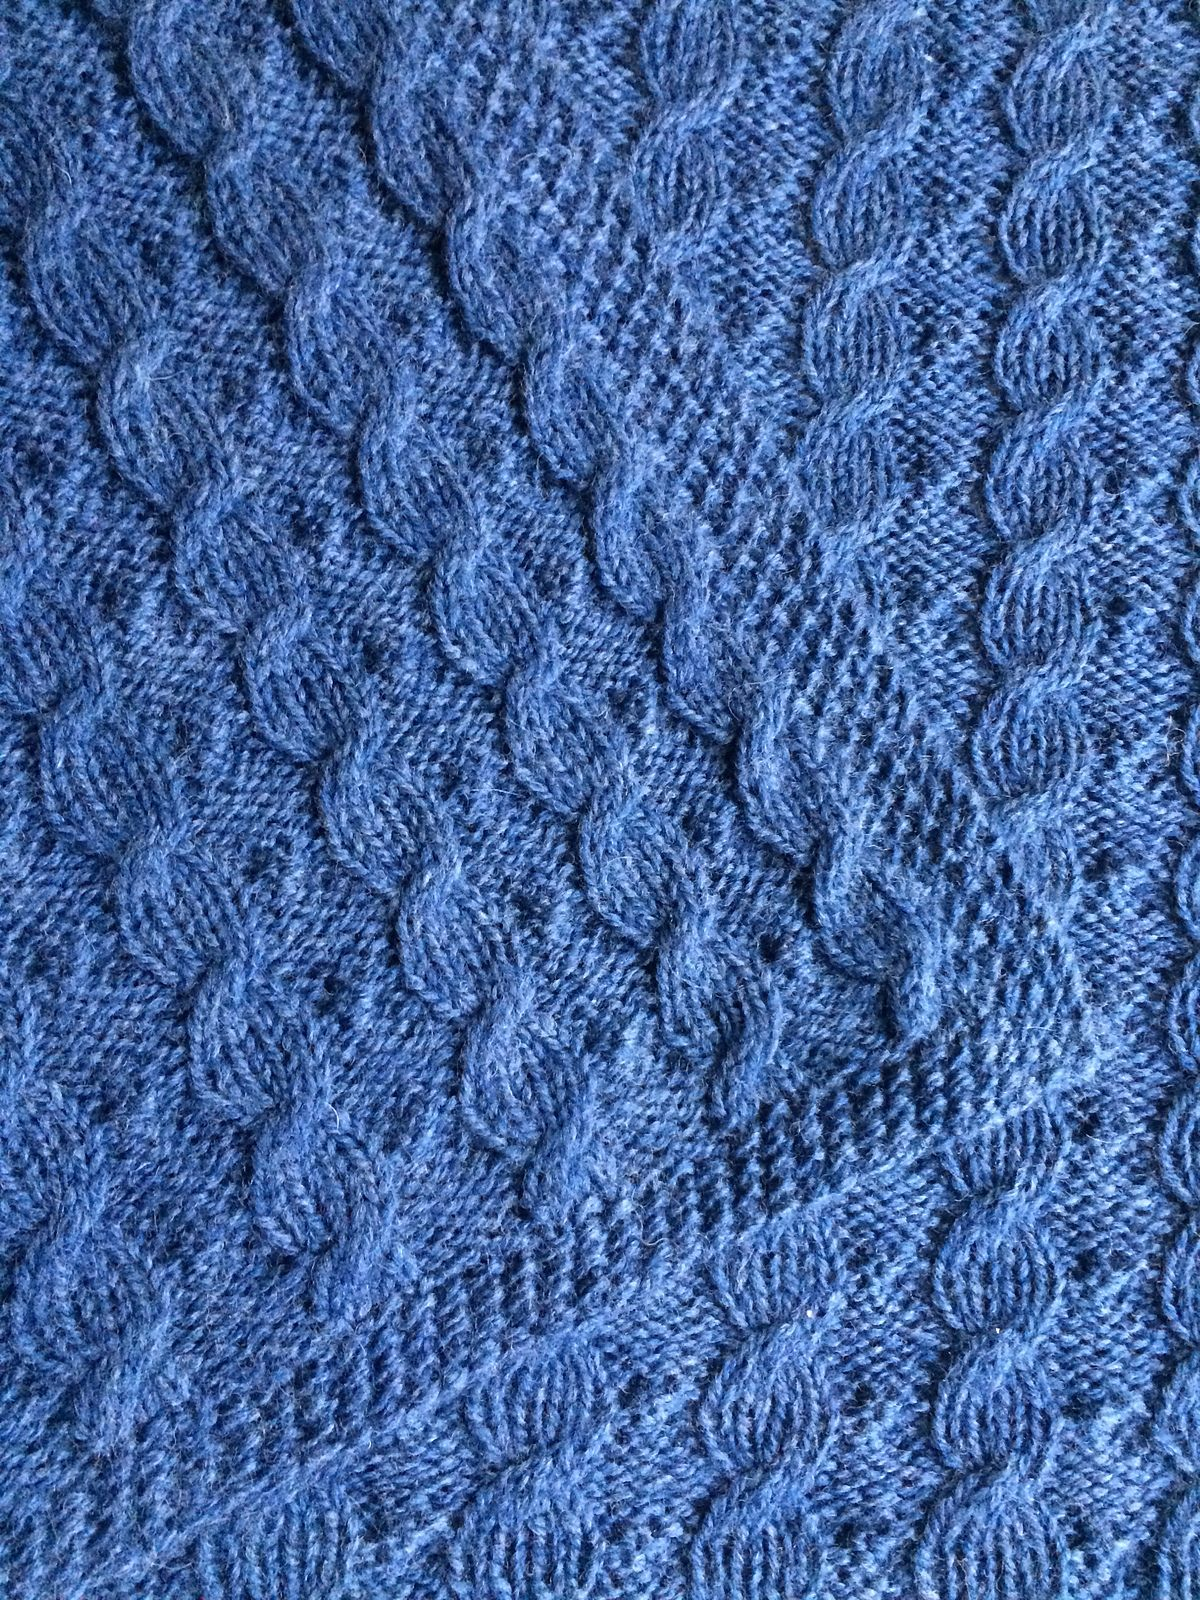 Reversible cable knitting patterns knitting patterns cable and free knitting pattern for reversible cable baby blanket bankloansurffo Gallery